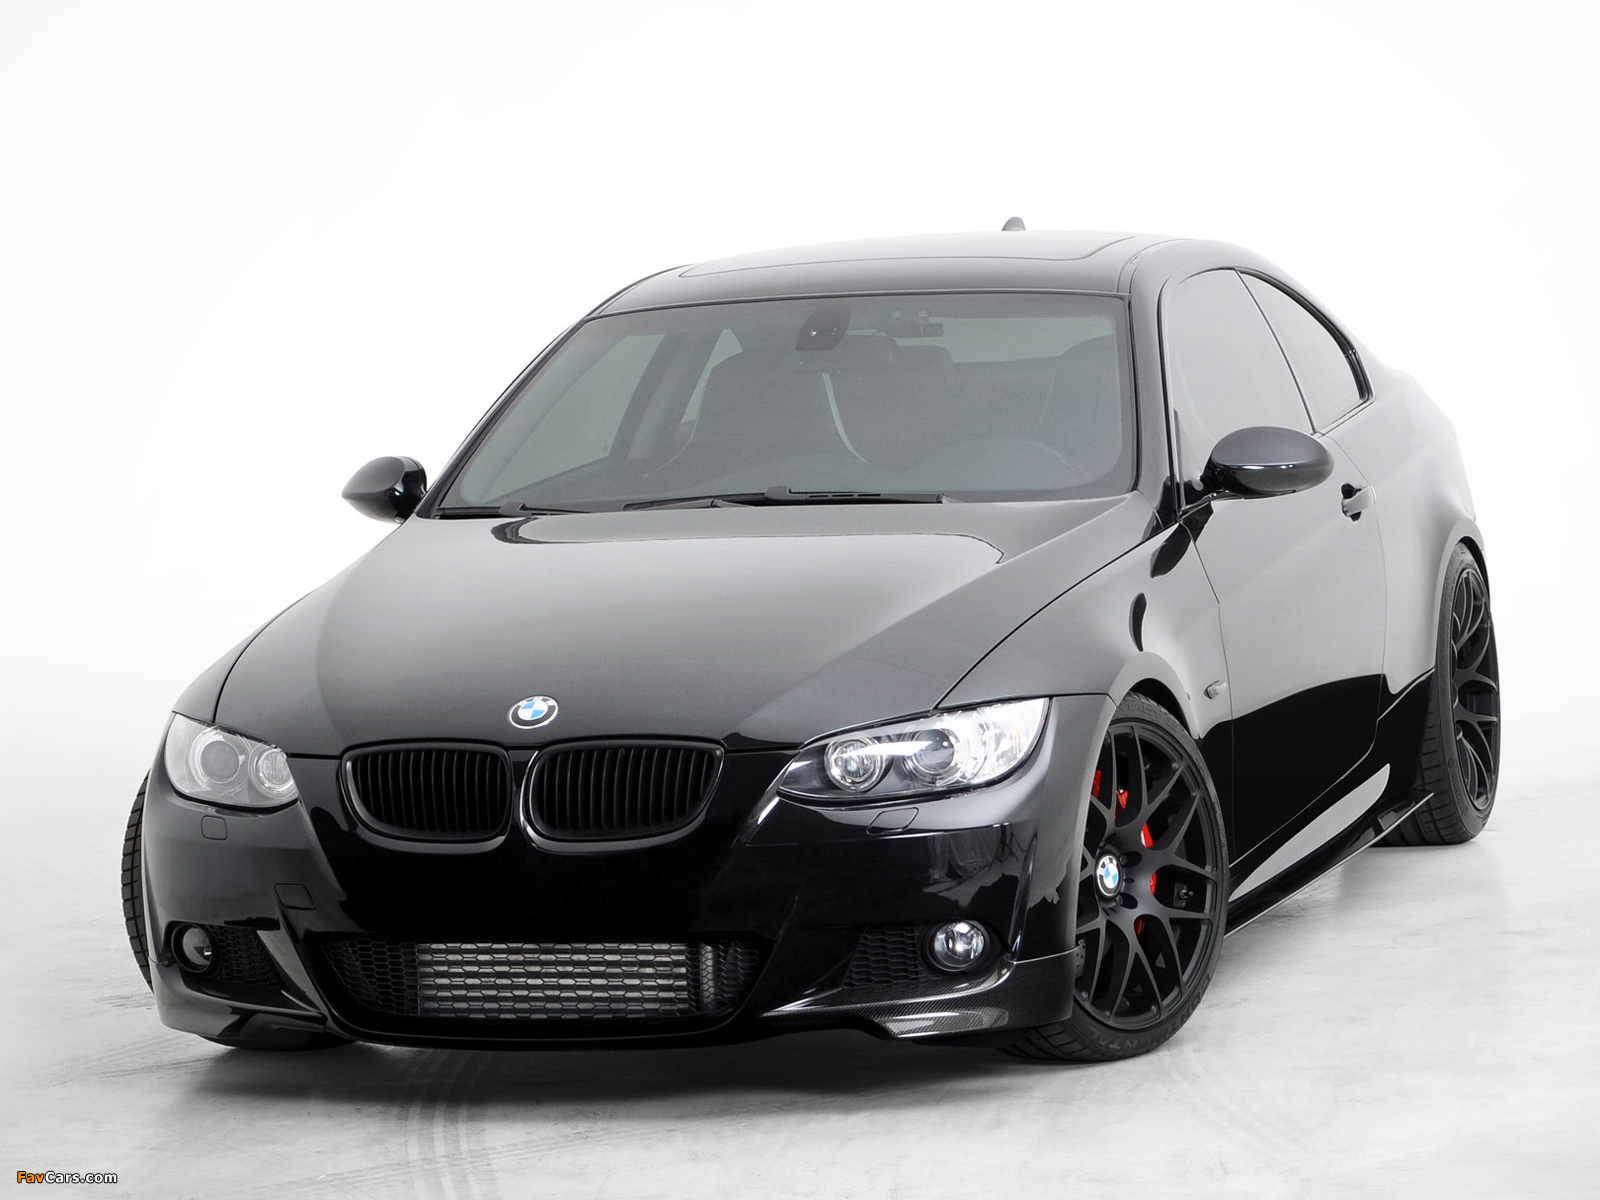 Pictures Of Eas Bmw 335i Coupe Black Saphire E92 2012 1600x1200